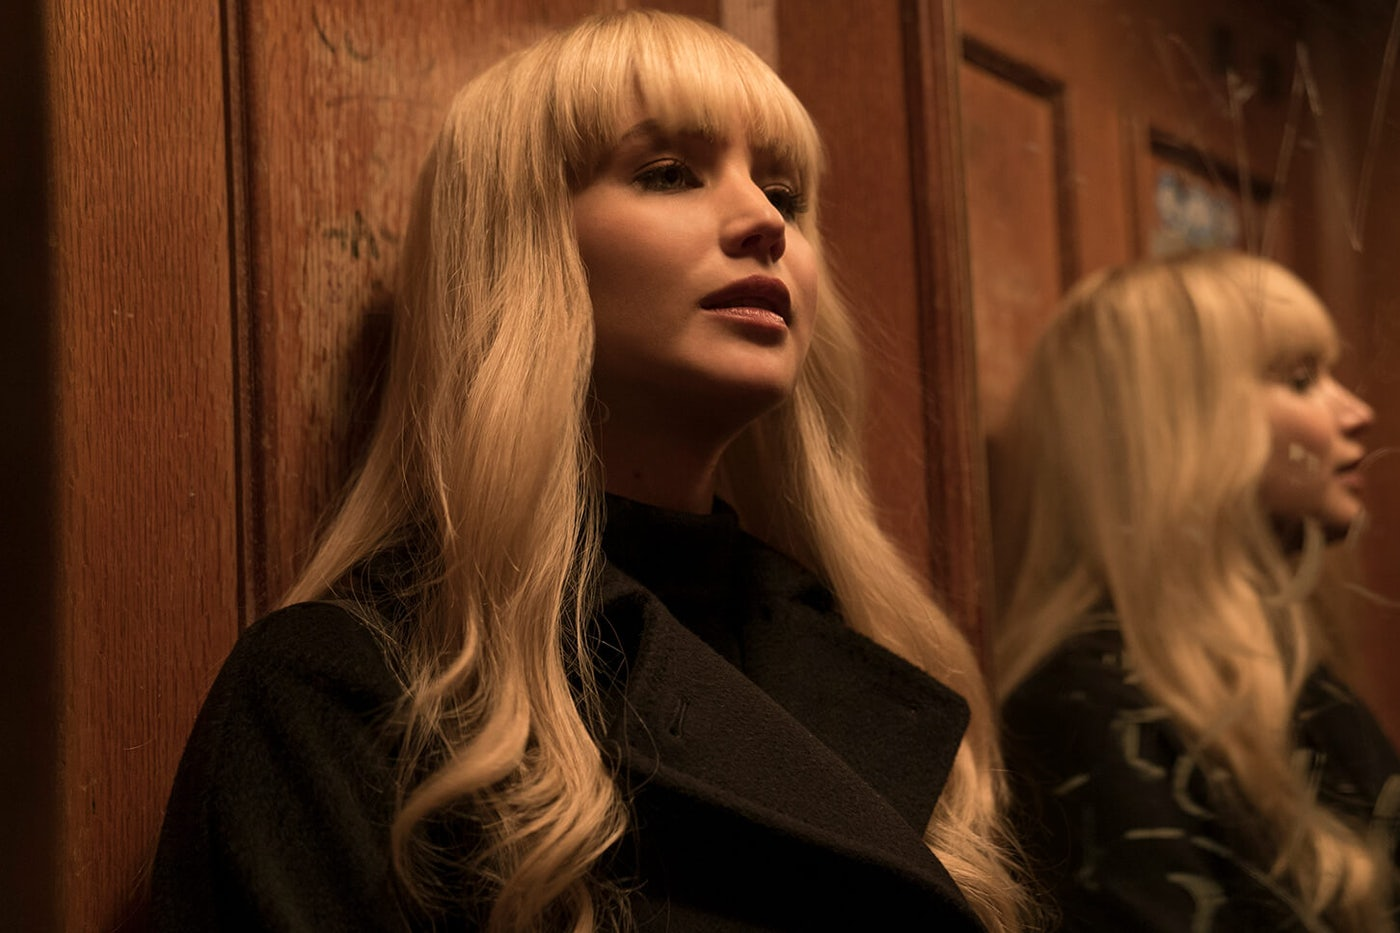 What S Hiding Behind Jennifer Lawrence S Bangs The New Republic